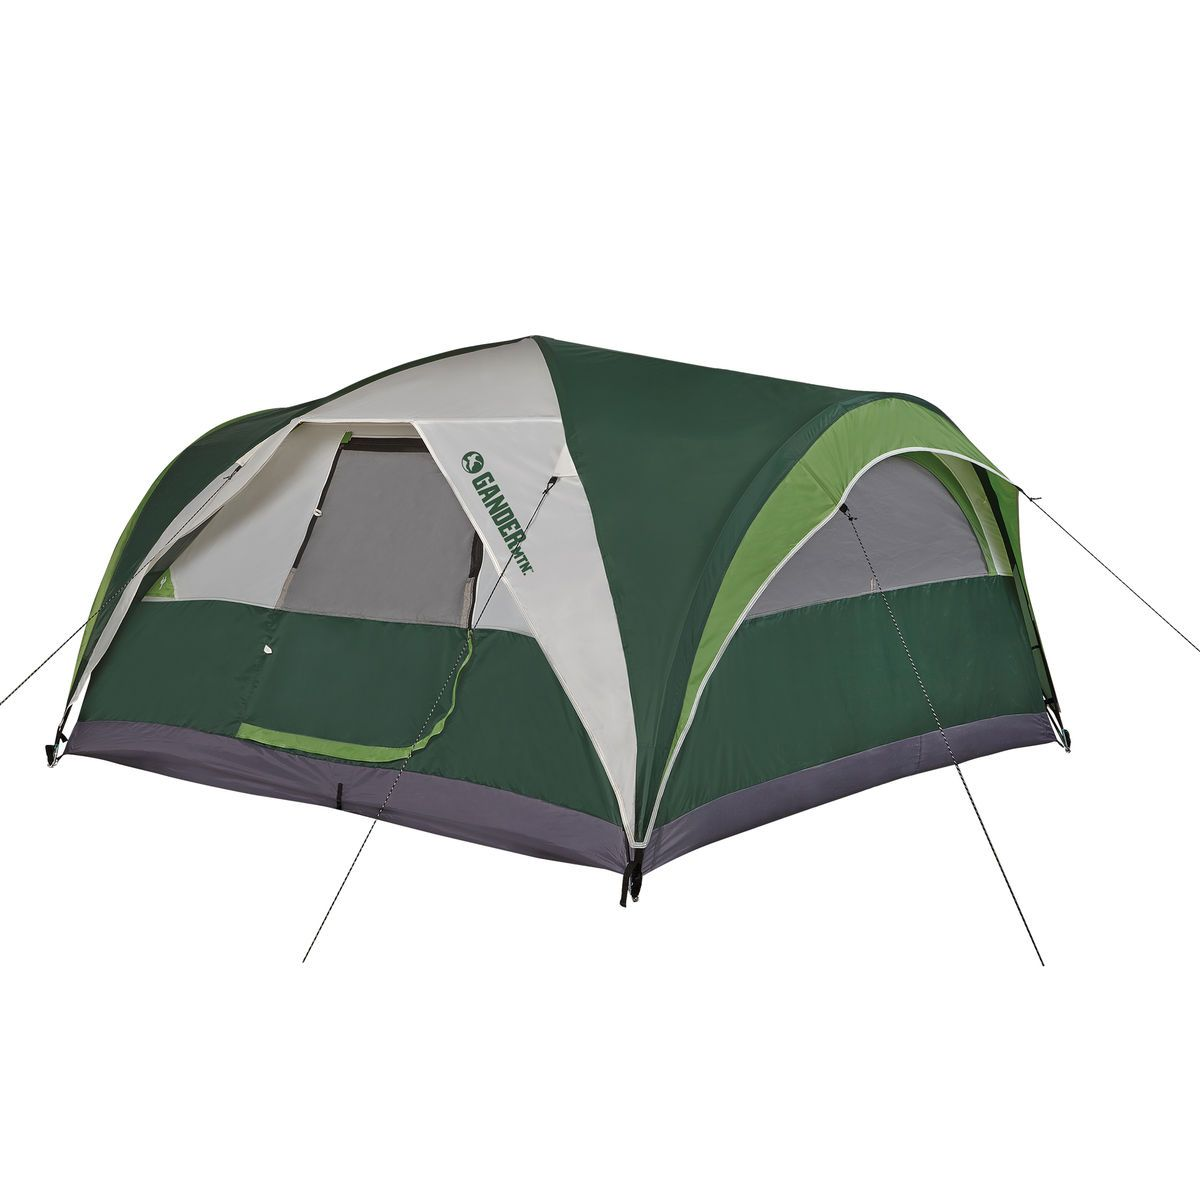 Gander Mountain Great Lakes 4-Person Tent  sc 1 st  Pinterest & Gander Mountain Great Lakes 4-Person Tent | camping | Pinterest ...